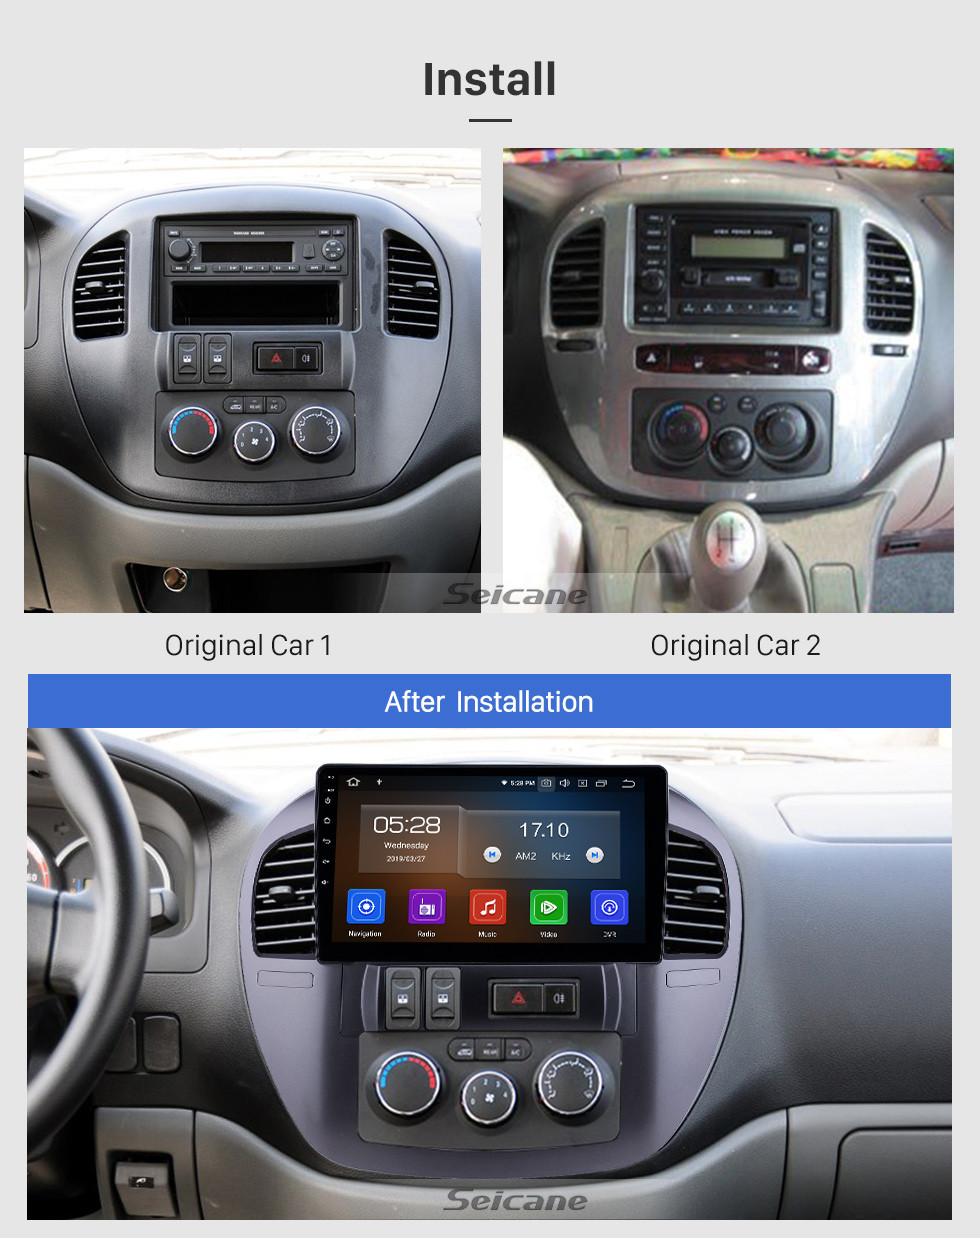 Seicane 10.1 inch 2008-2014 Fxauto LZLingzhi Android 10.0 GPS Navigation Radio Bluetooth Touchscreen AUX Carplay support OBD2 DAB+ 1080P Video